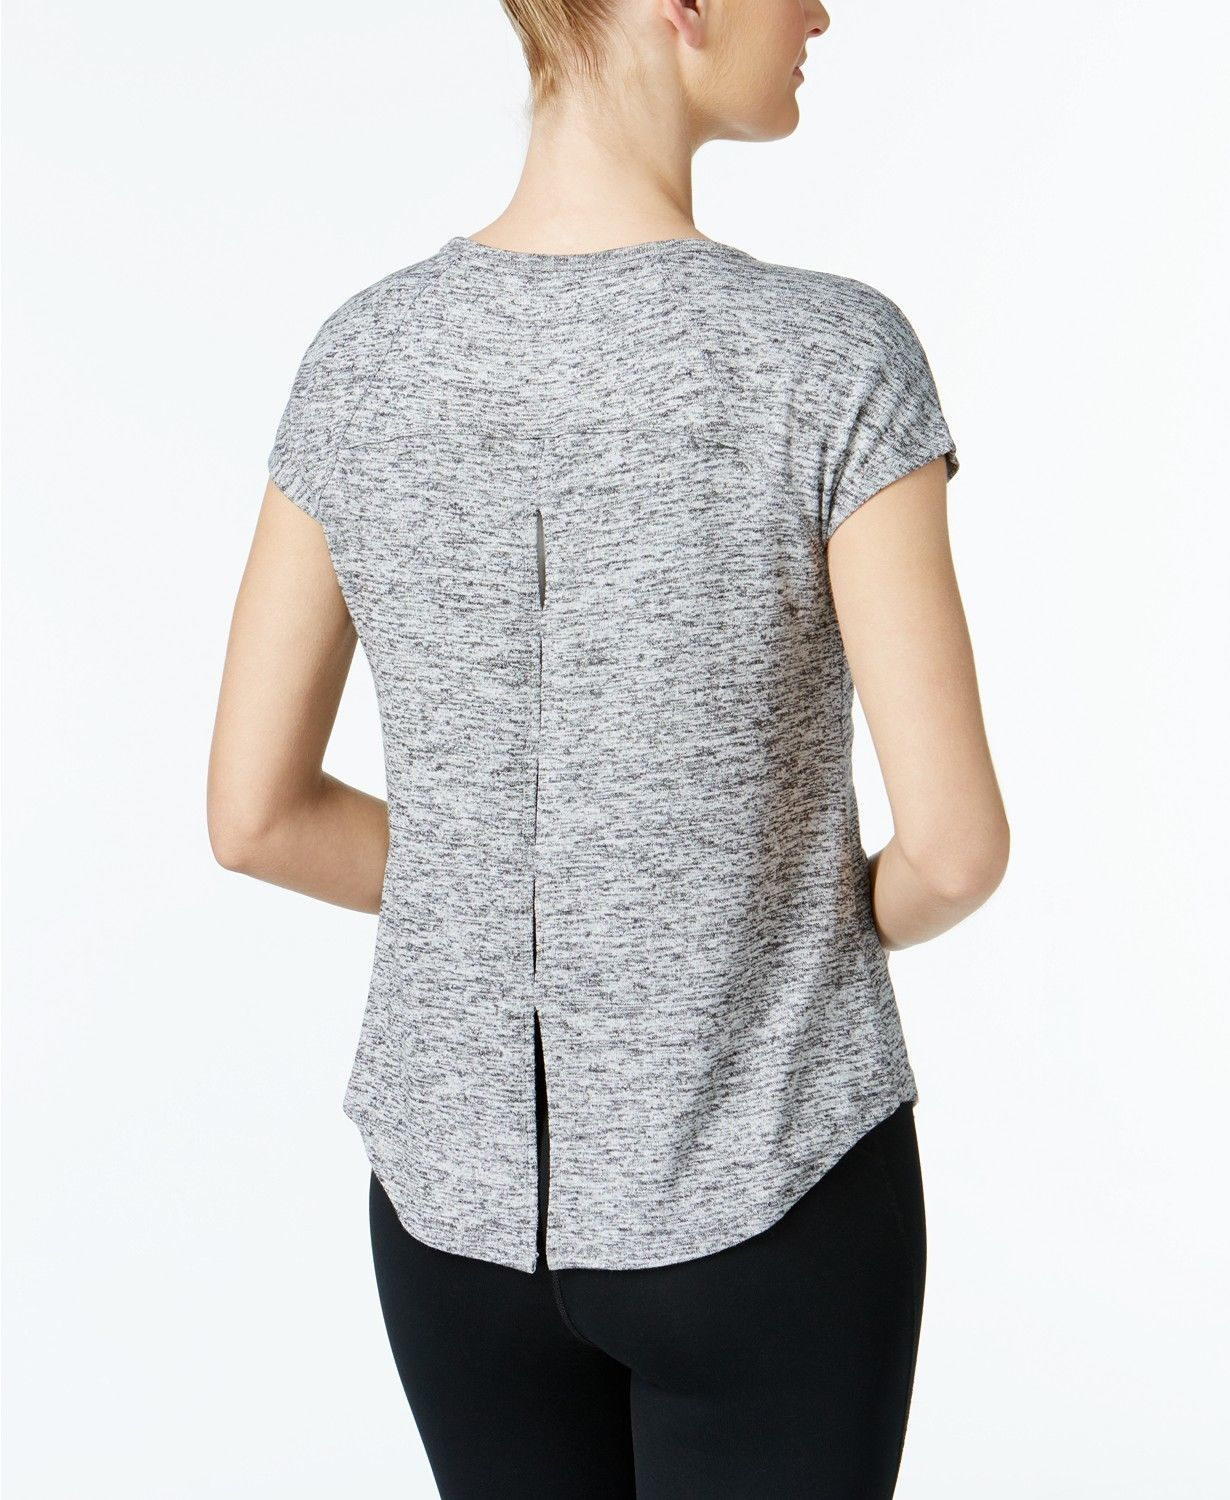 Calvin Klein Womens Performance Marled Keyhole Back Top Grey Size XXL $49 - NWT